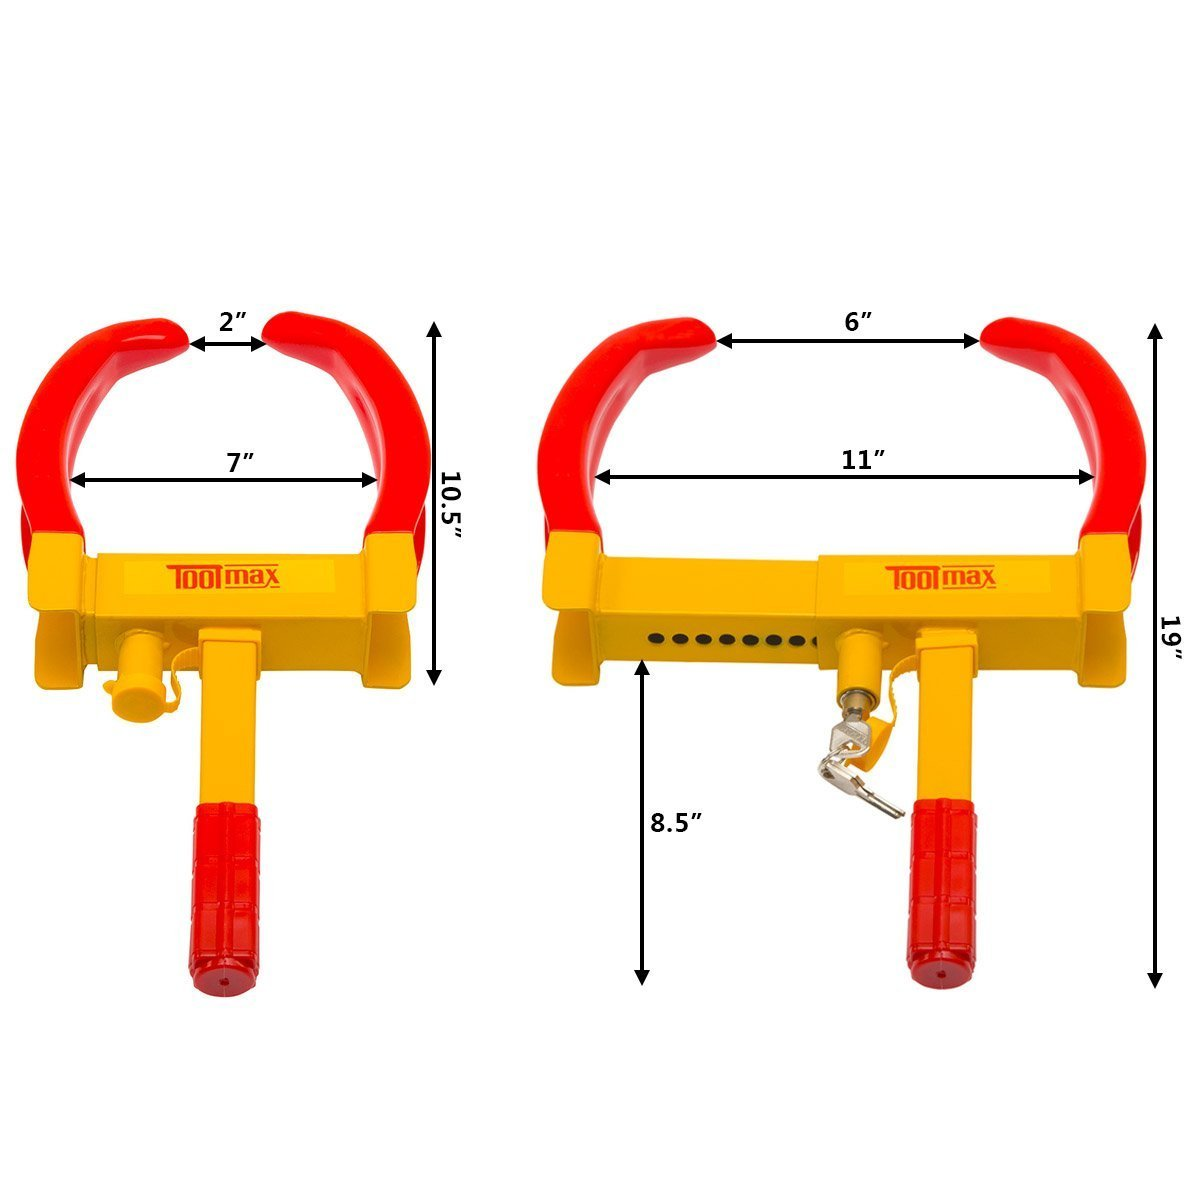 1 Pack Heavy Duty Adjustable Tire Boot Claw for Trailer Auto Car Truck RV Boat Anti-Theft Towing 5.3 Lbs S AFSTAR Safstar Wheel Lock Clamp